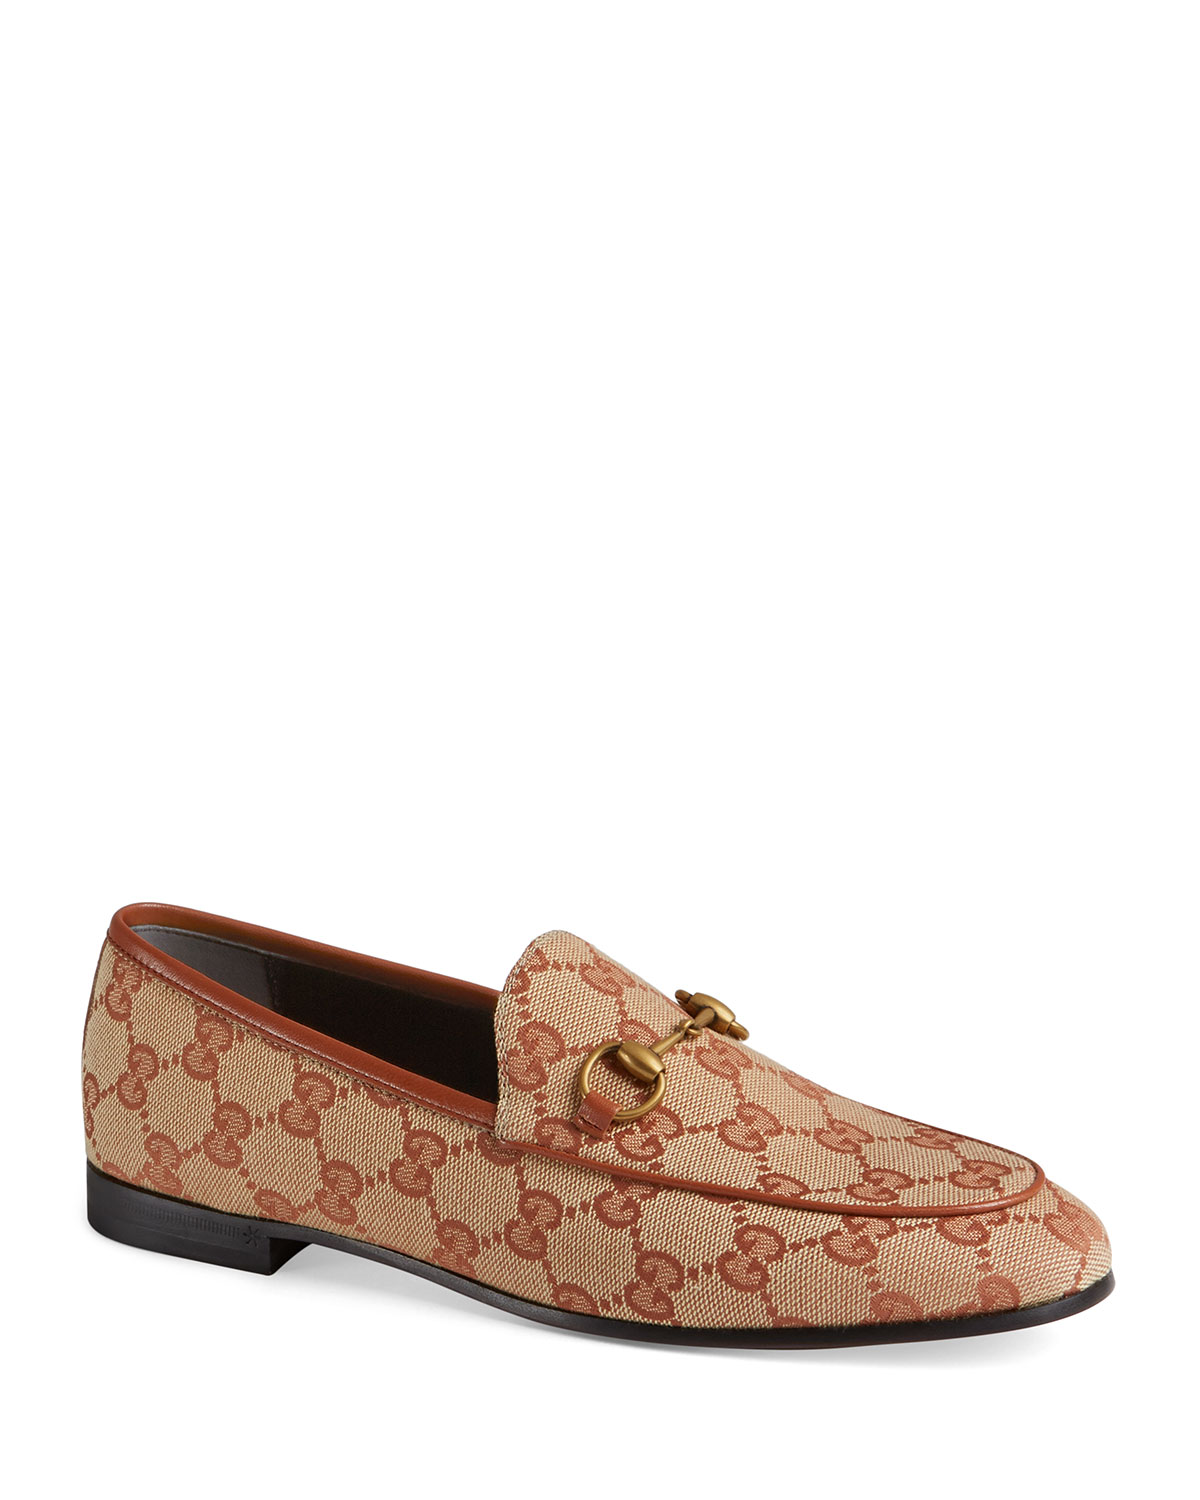 16121dd8538d Gucci GG Canvas Flat Loafers